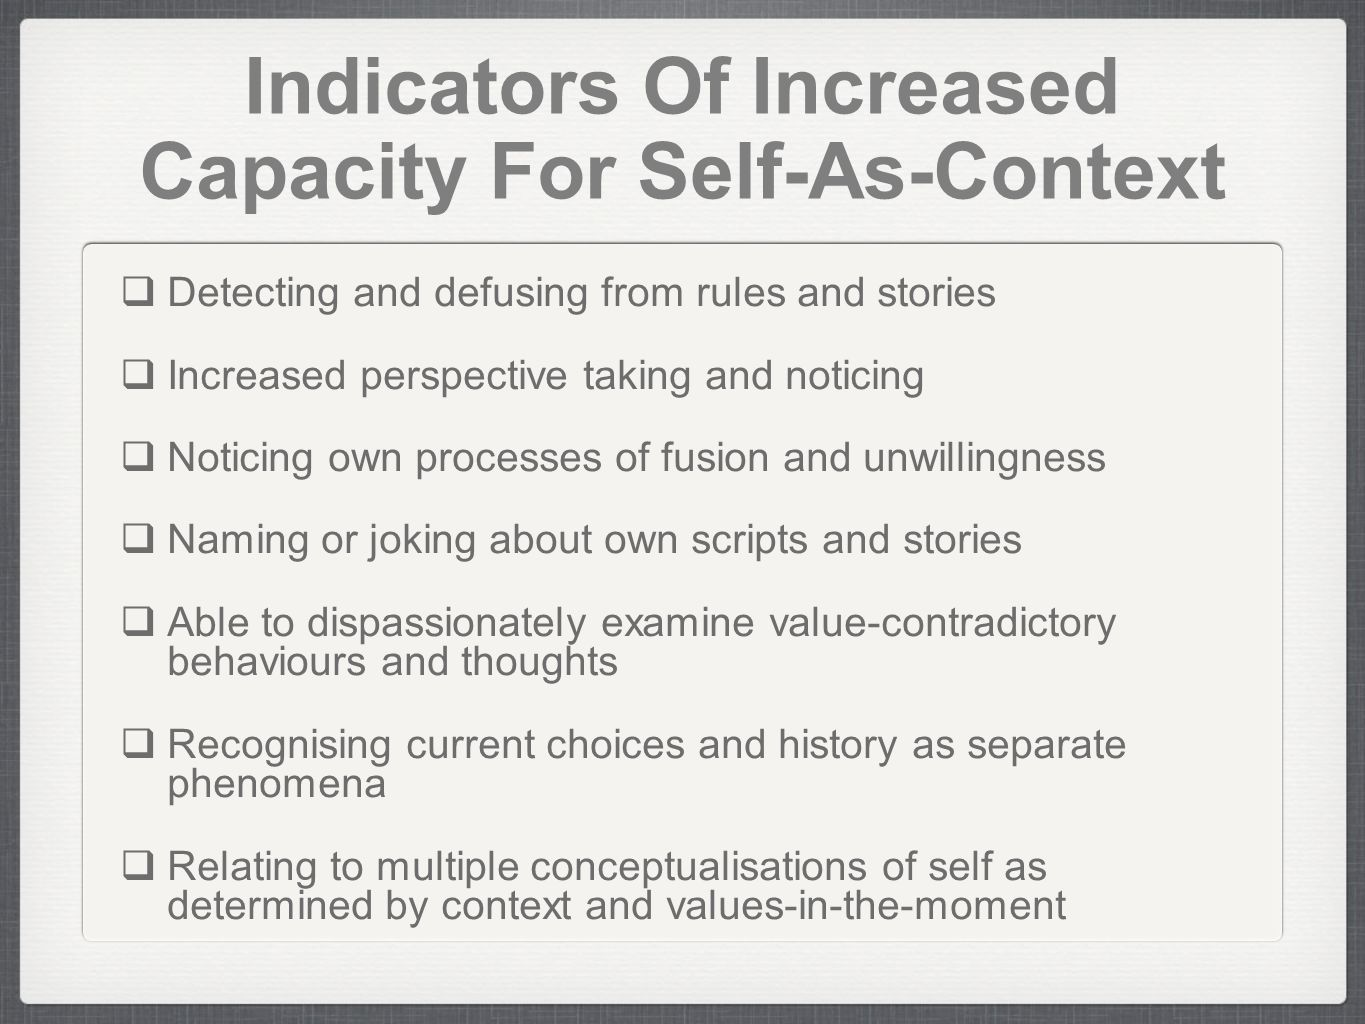 Indicators Of Increased Capacity For Self-As-Context Detecting and defusing from rules and stories Increased perspective taking and noticing Noticing